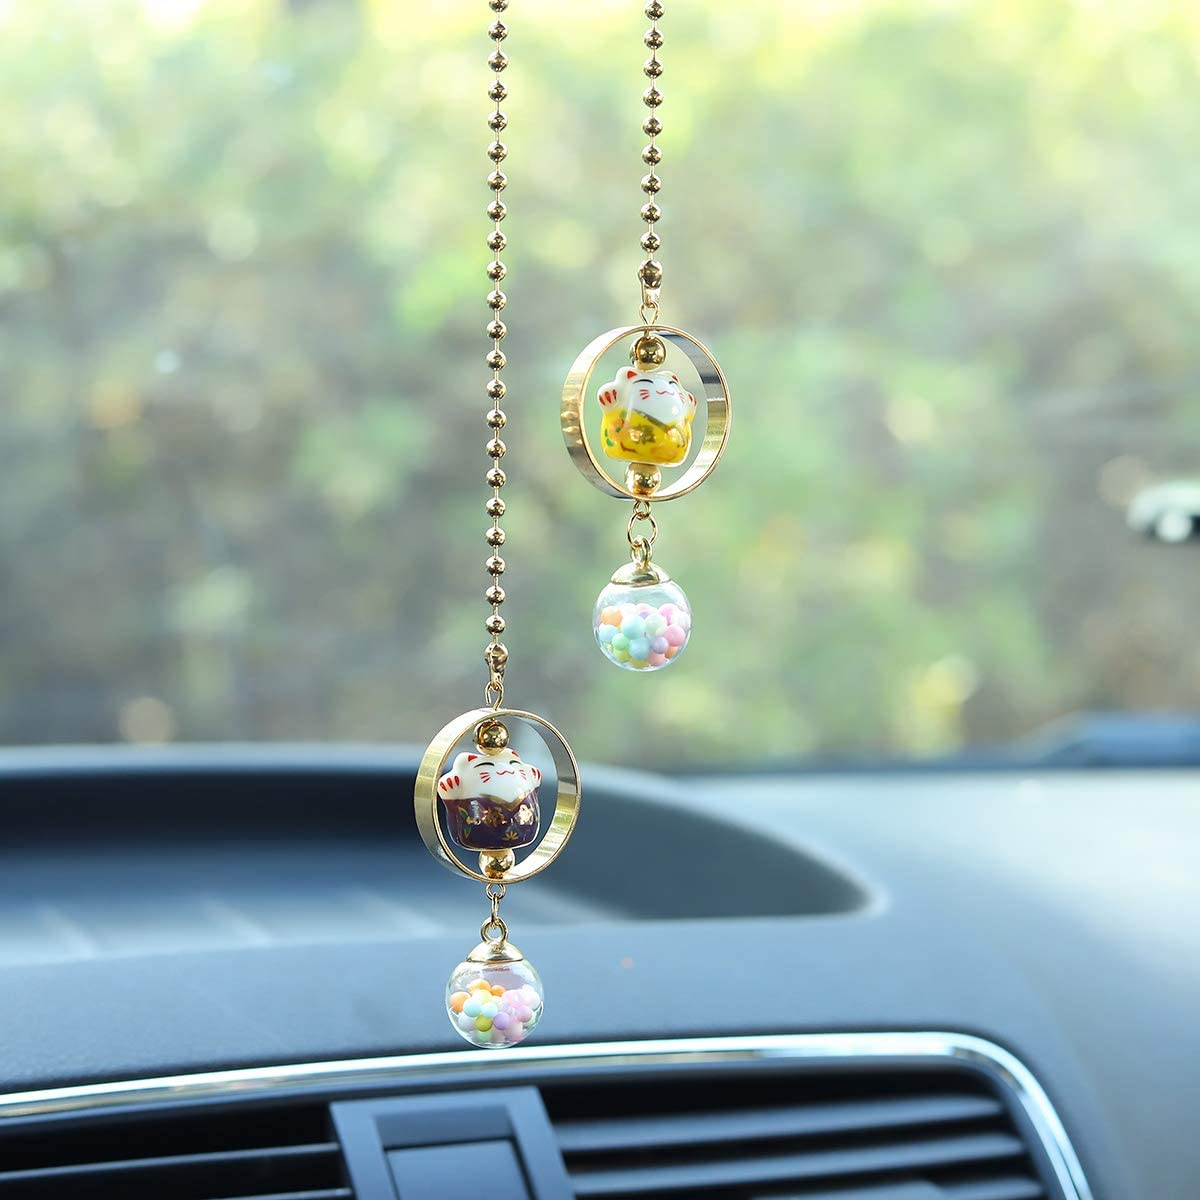 Lucky Cat Car Charm pendant Rear View Mirror Pendant Porcelain Figurine Hanging Pendant Car Accassories Purple /& Yellow